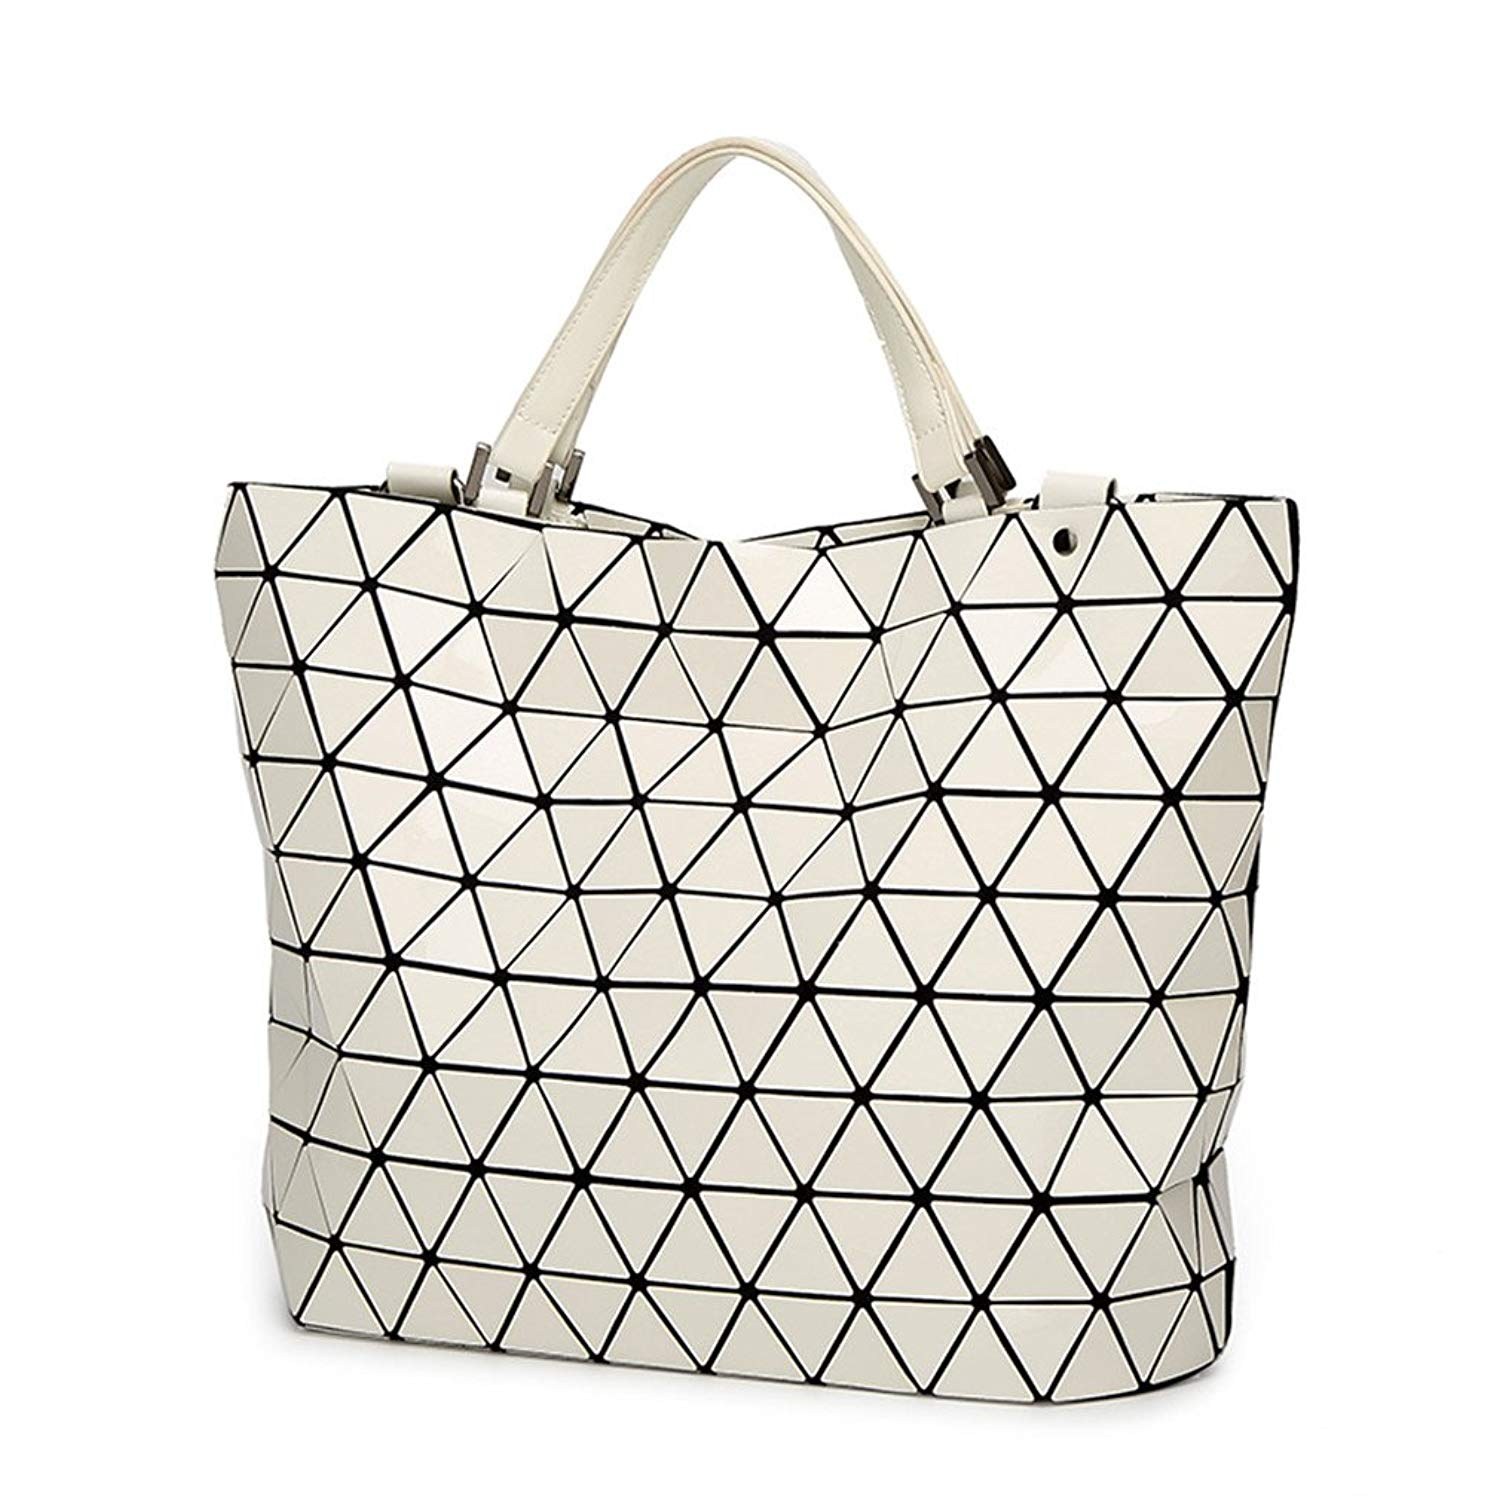 4e6636006e Get Quotations · NEW Women Japan Bags Bucket Bag Geometry Sequins Mirror  Saser Plain Folding Shoulder Bags Female Tote